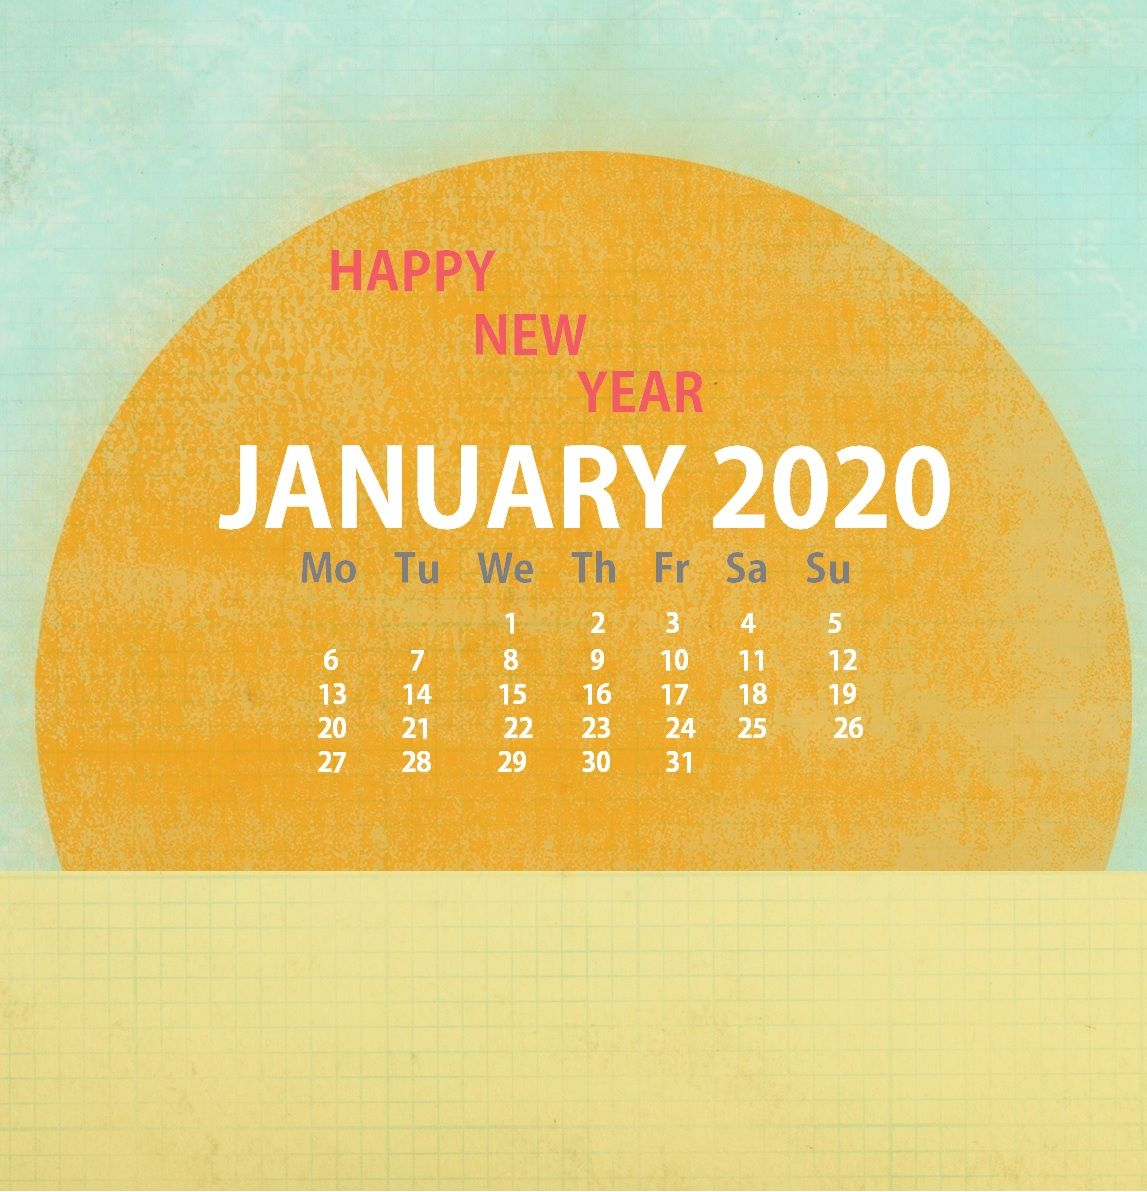 iPhone January 2020 Wallpaper Calendar (With images